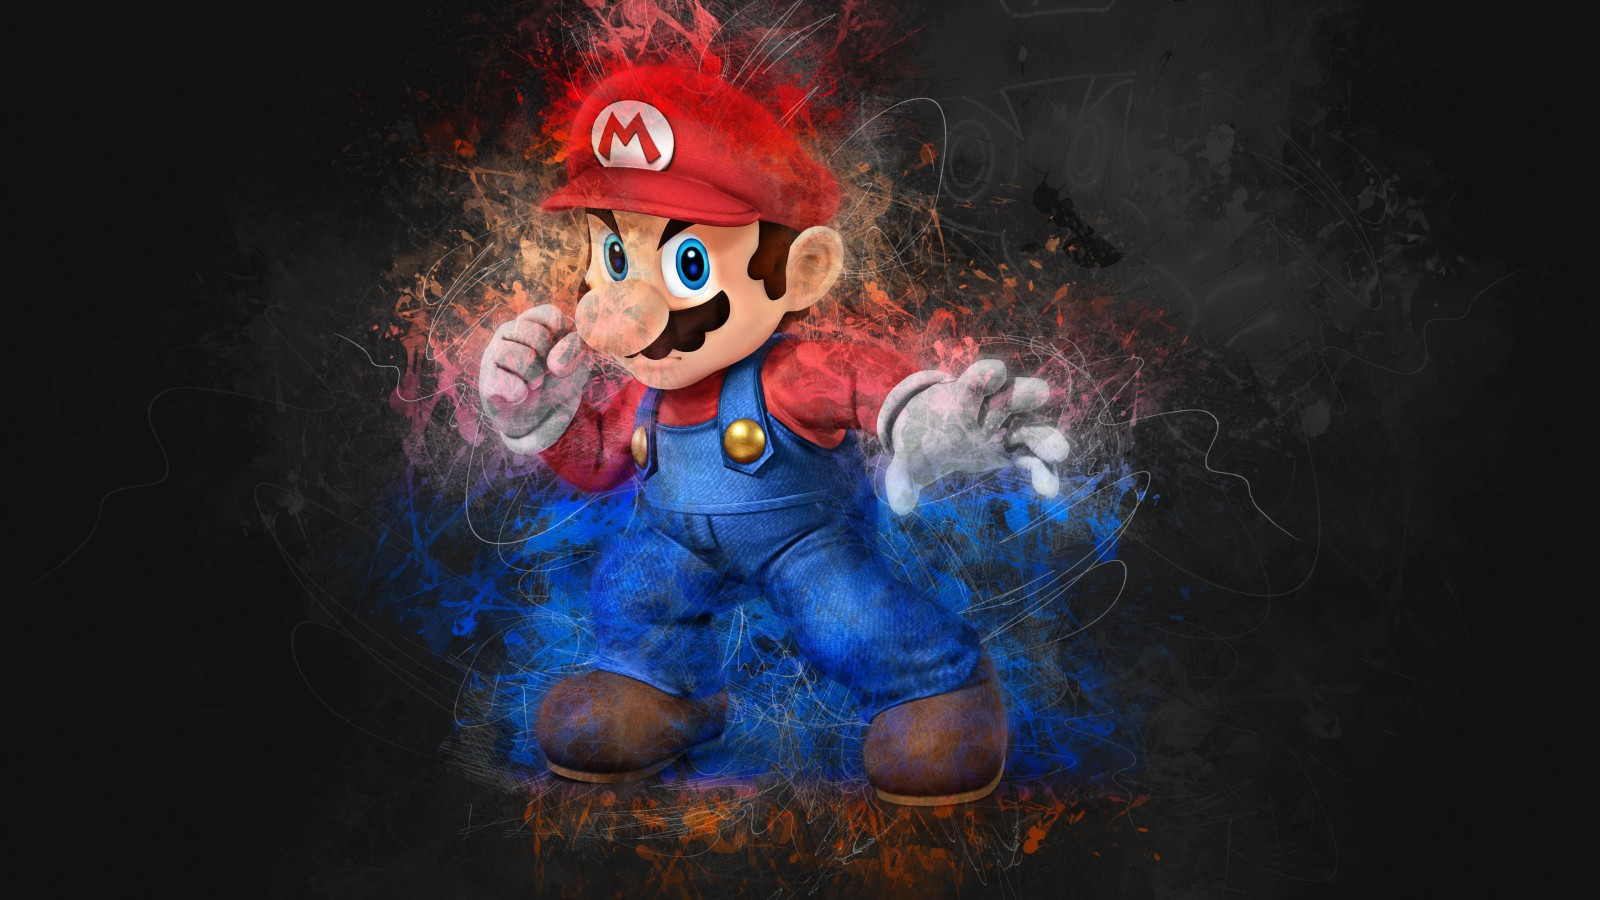 Super Mario Wallpaper Iphone 5 Super Mario Artwork 4k Wallpapers Hd Wallpapers Id 25060